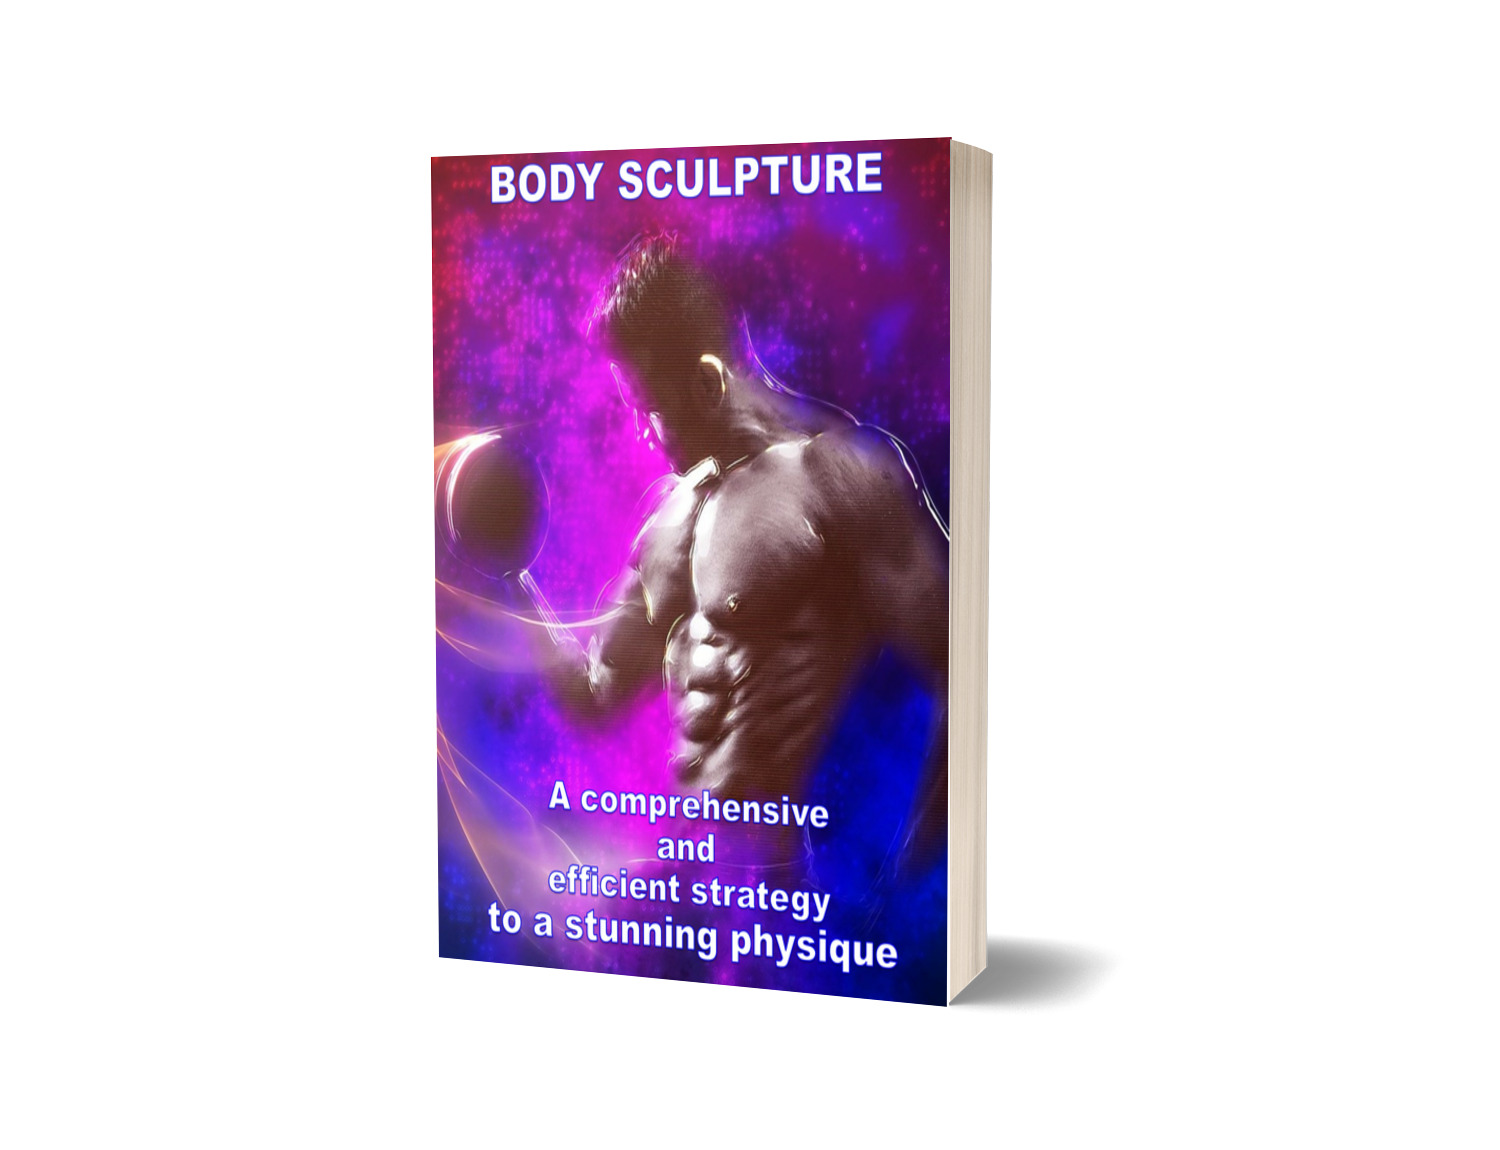 Body Sculpture ebook efficient strategy to a stunning physique